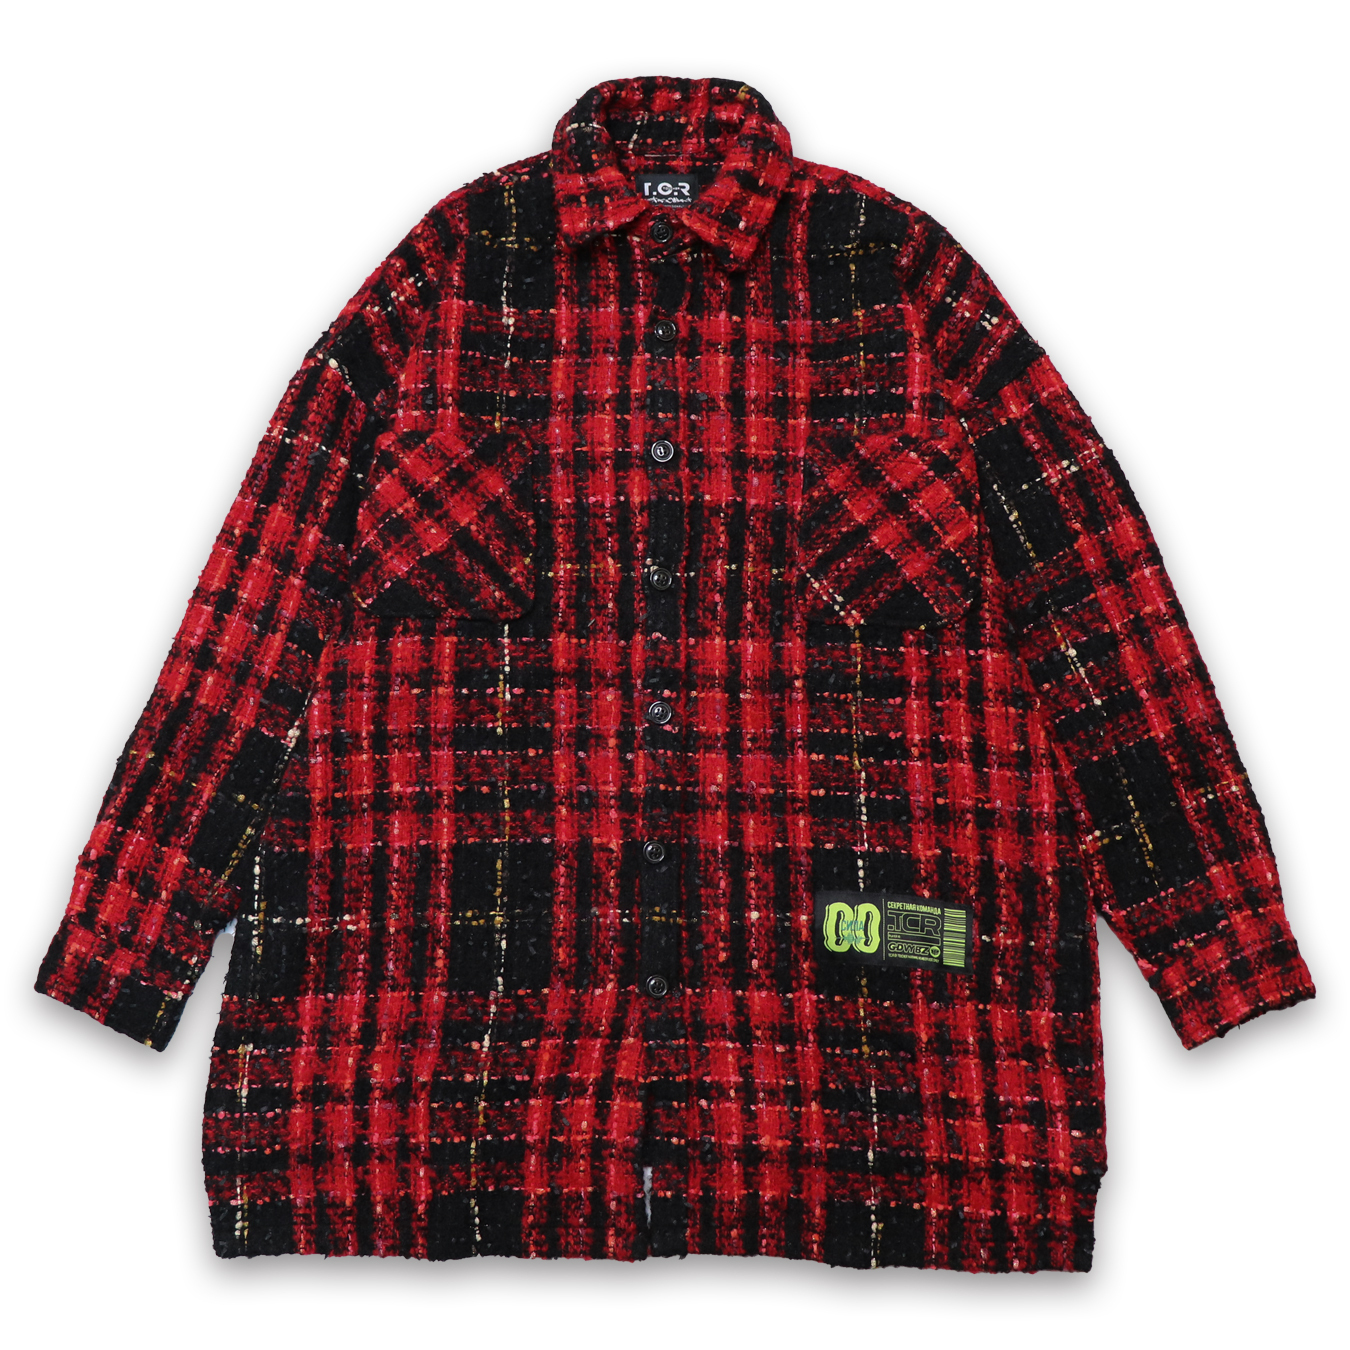 T.C.R FLANNAL CHECK SHIRT - RED